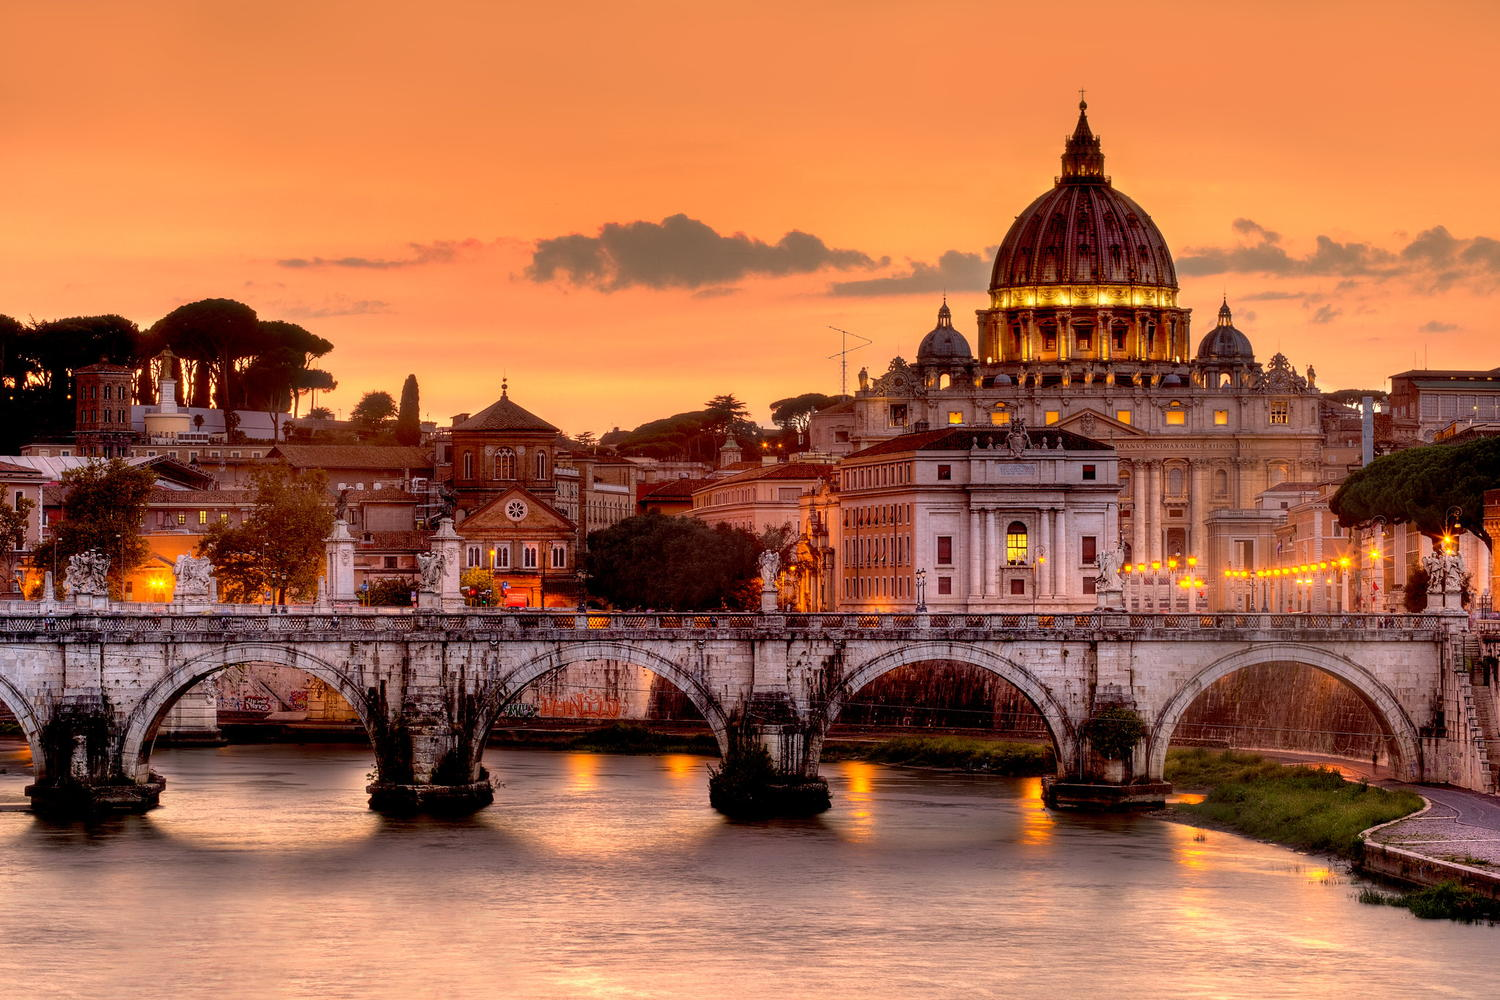 St. Peter Basilica in Vatican city and Sant'Angelo bridge over Tiber river in Rome, Italy.